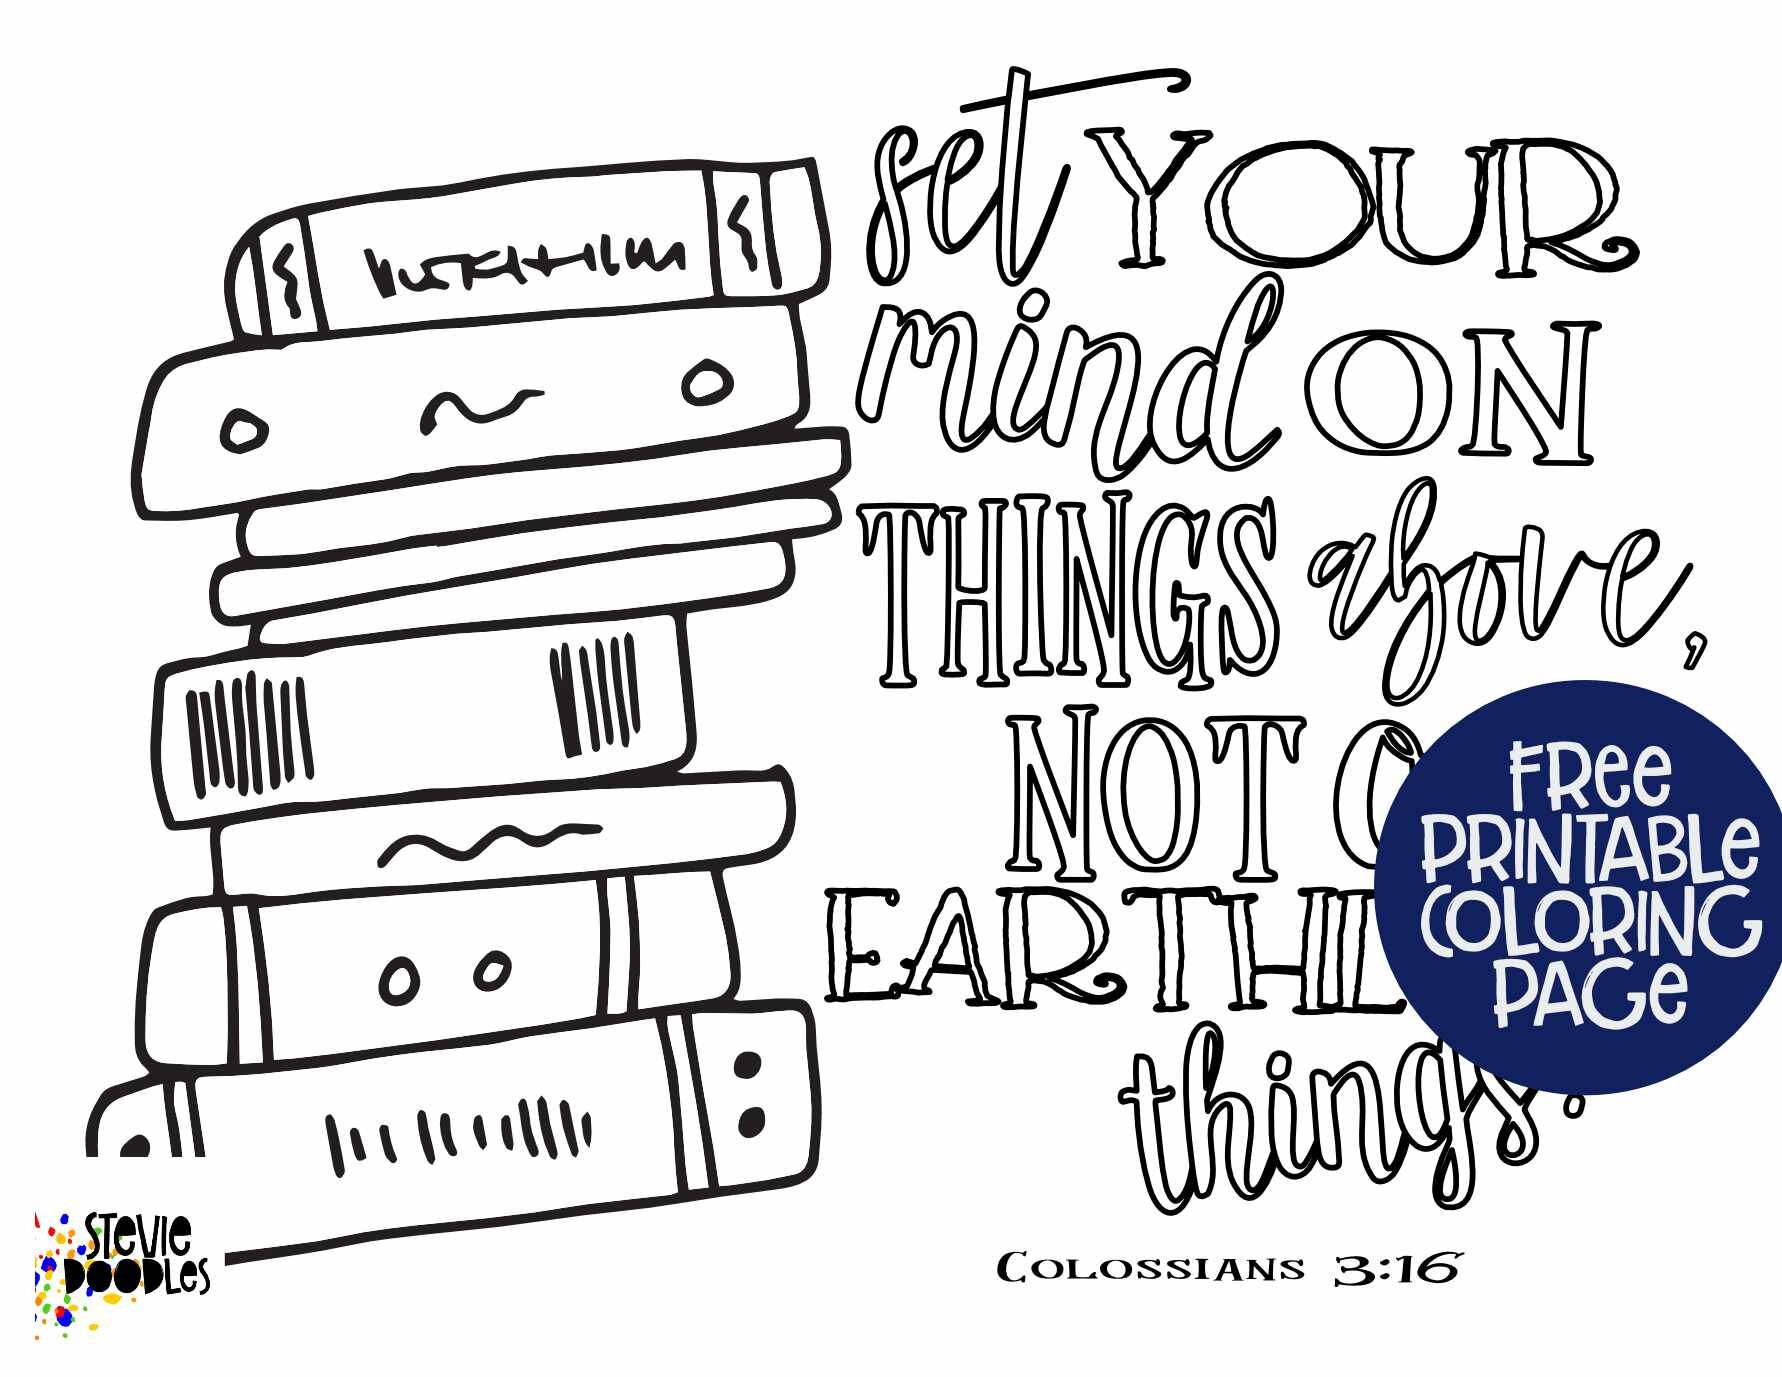 Colossians 3:16 - Set Your Mind On Things Above Not On Earthly Things —  Stevie Doodles Free Printable Coloring Pages